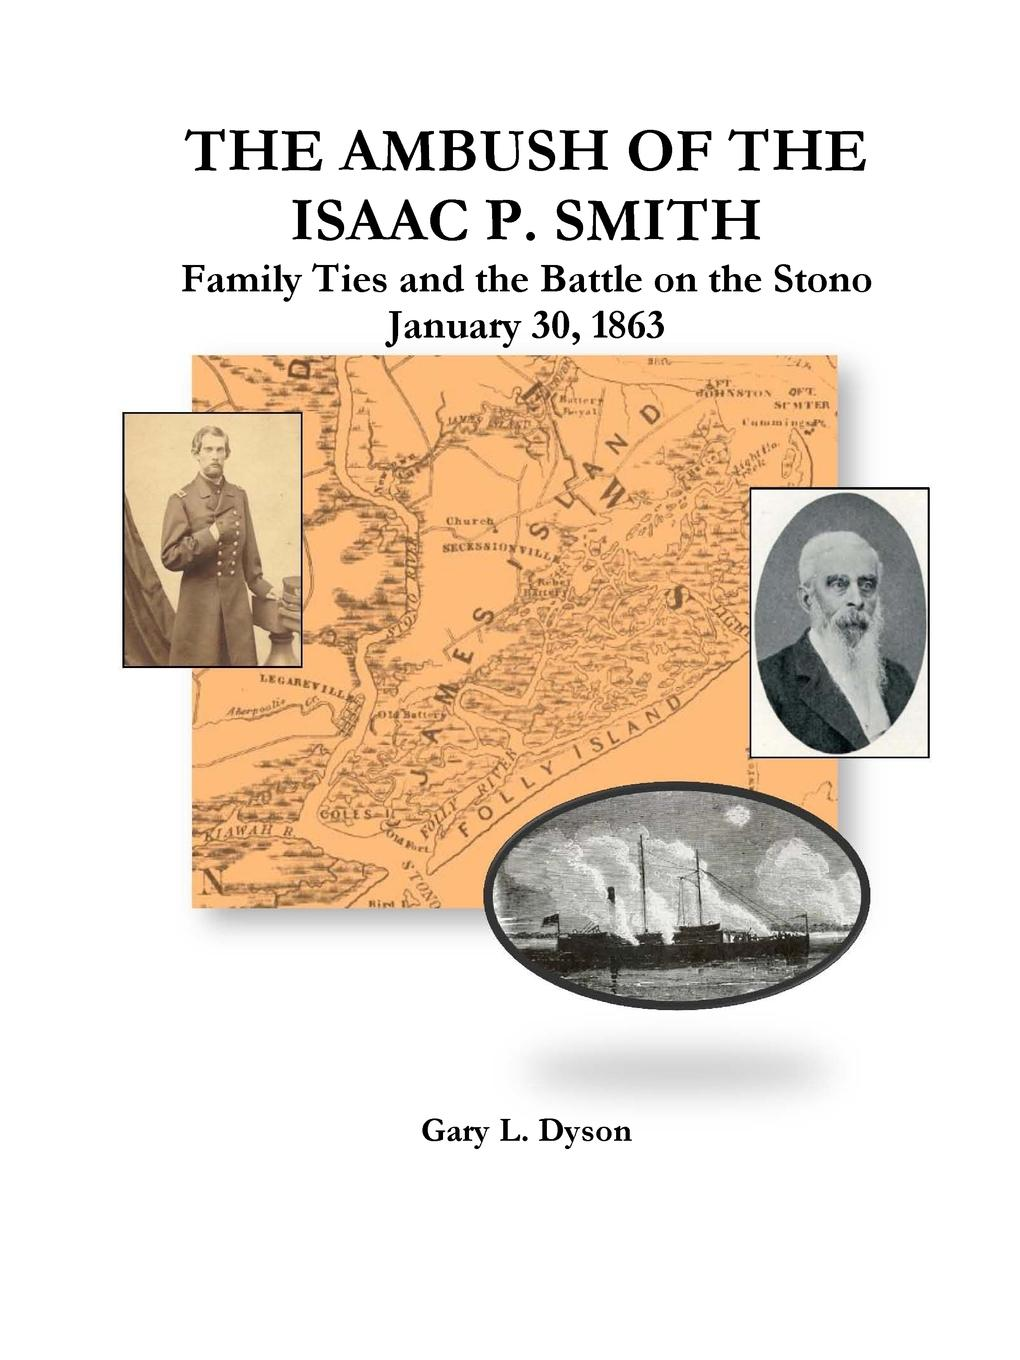 Gary L. Dyson The Ambush of the Isaac P. Smith, Family Ties and the Battle on the Stono, January 30, 1863 the end of the battle